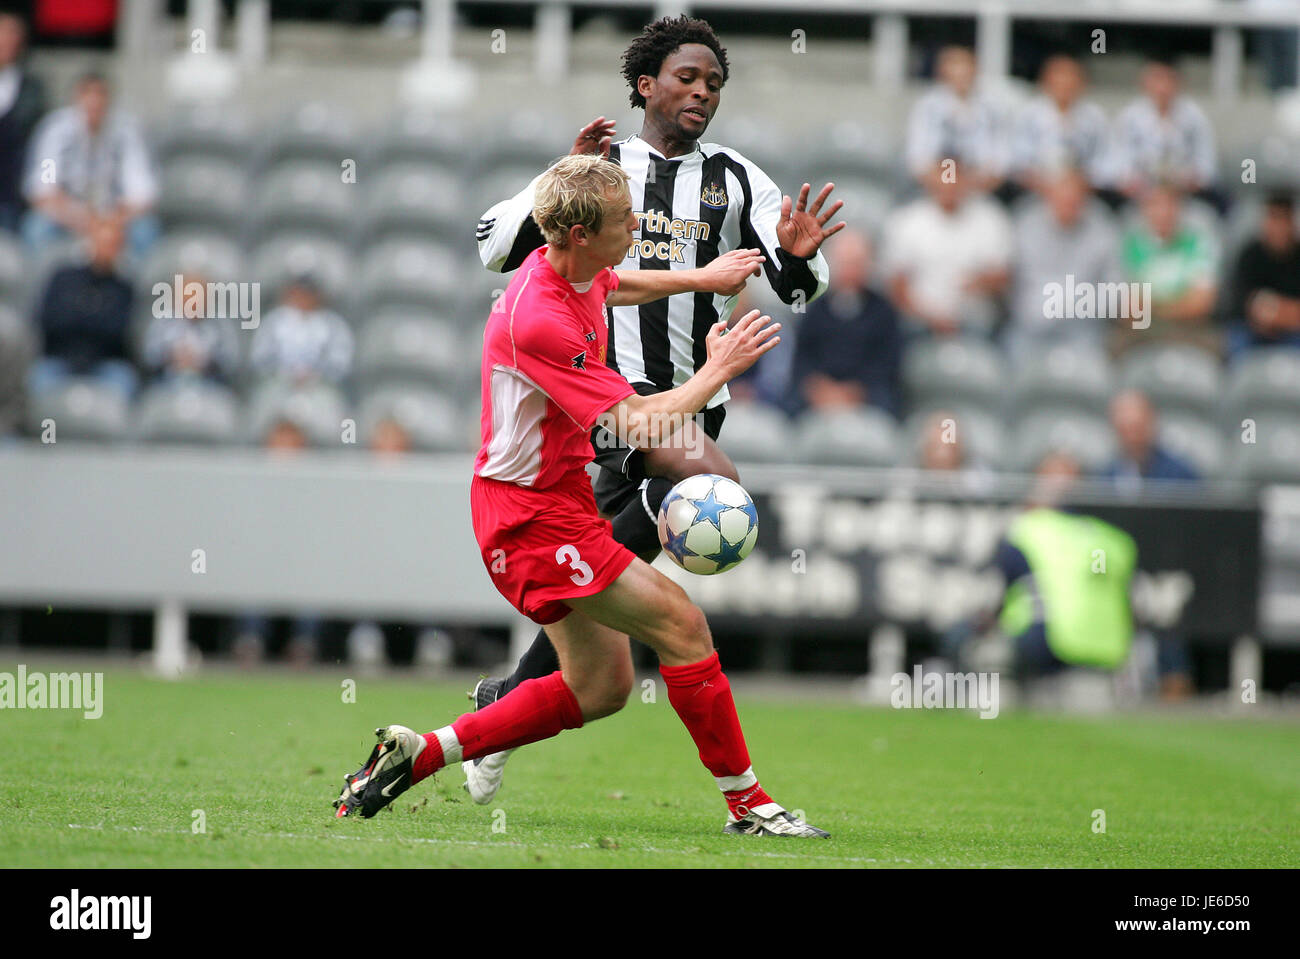 C BABAYARO & MATEJ IZVOLT NEWCASTLE V DUBNICA ST.JAMES PARK NEWCASTLE 23 July 2005 - Stock Image